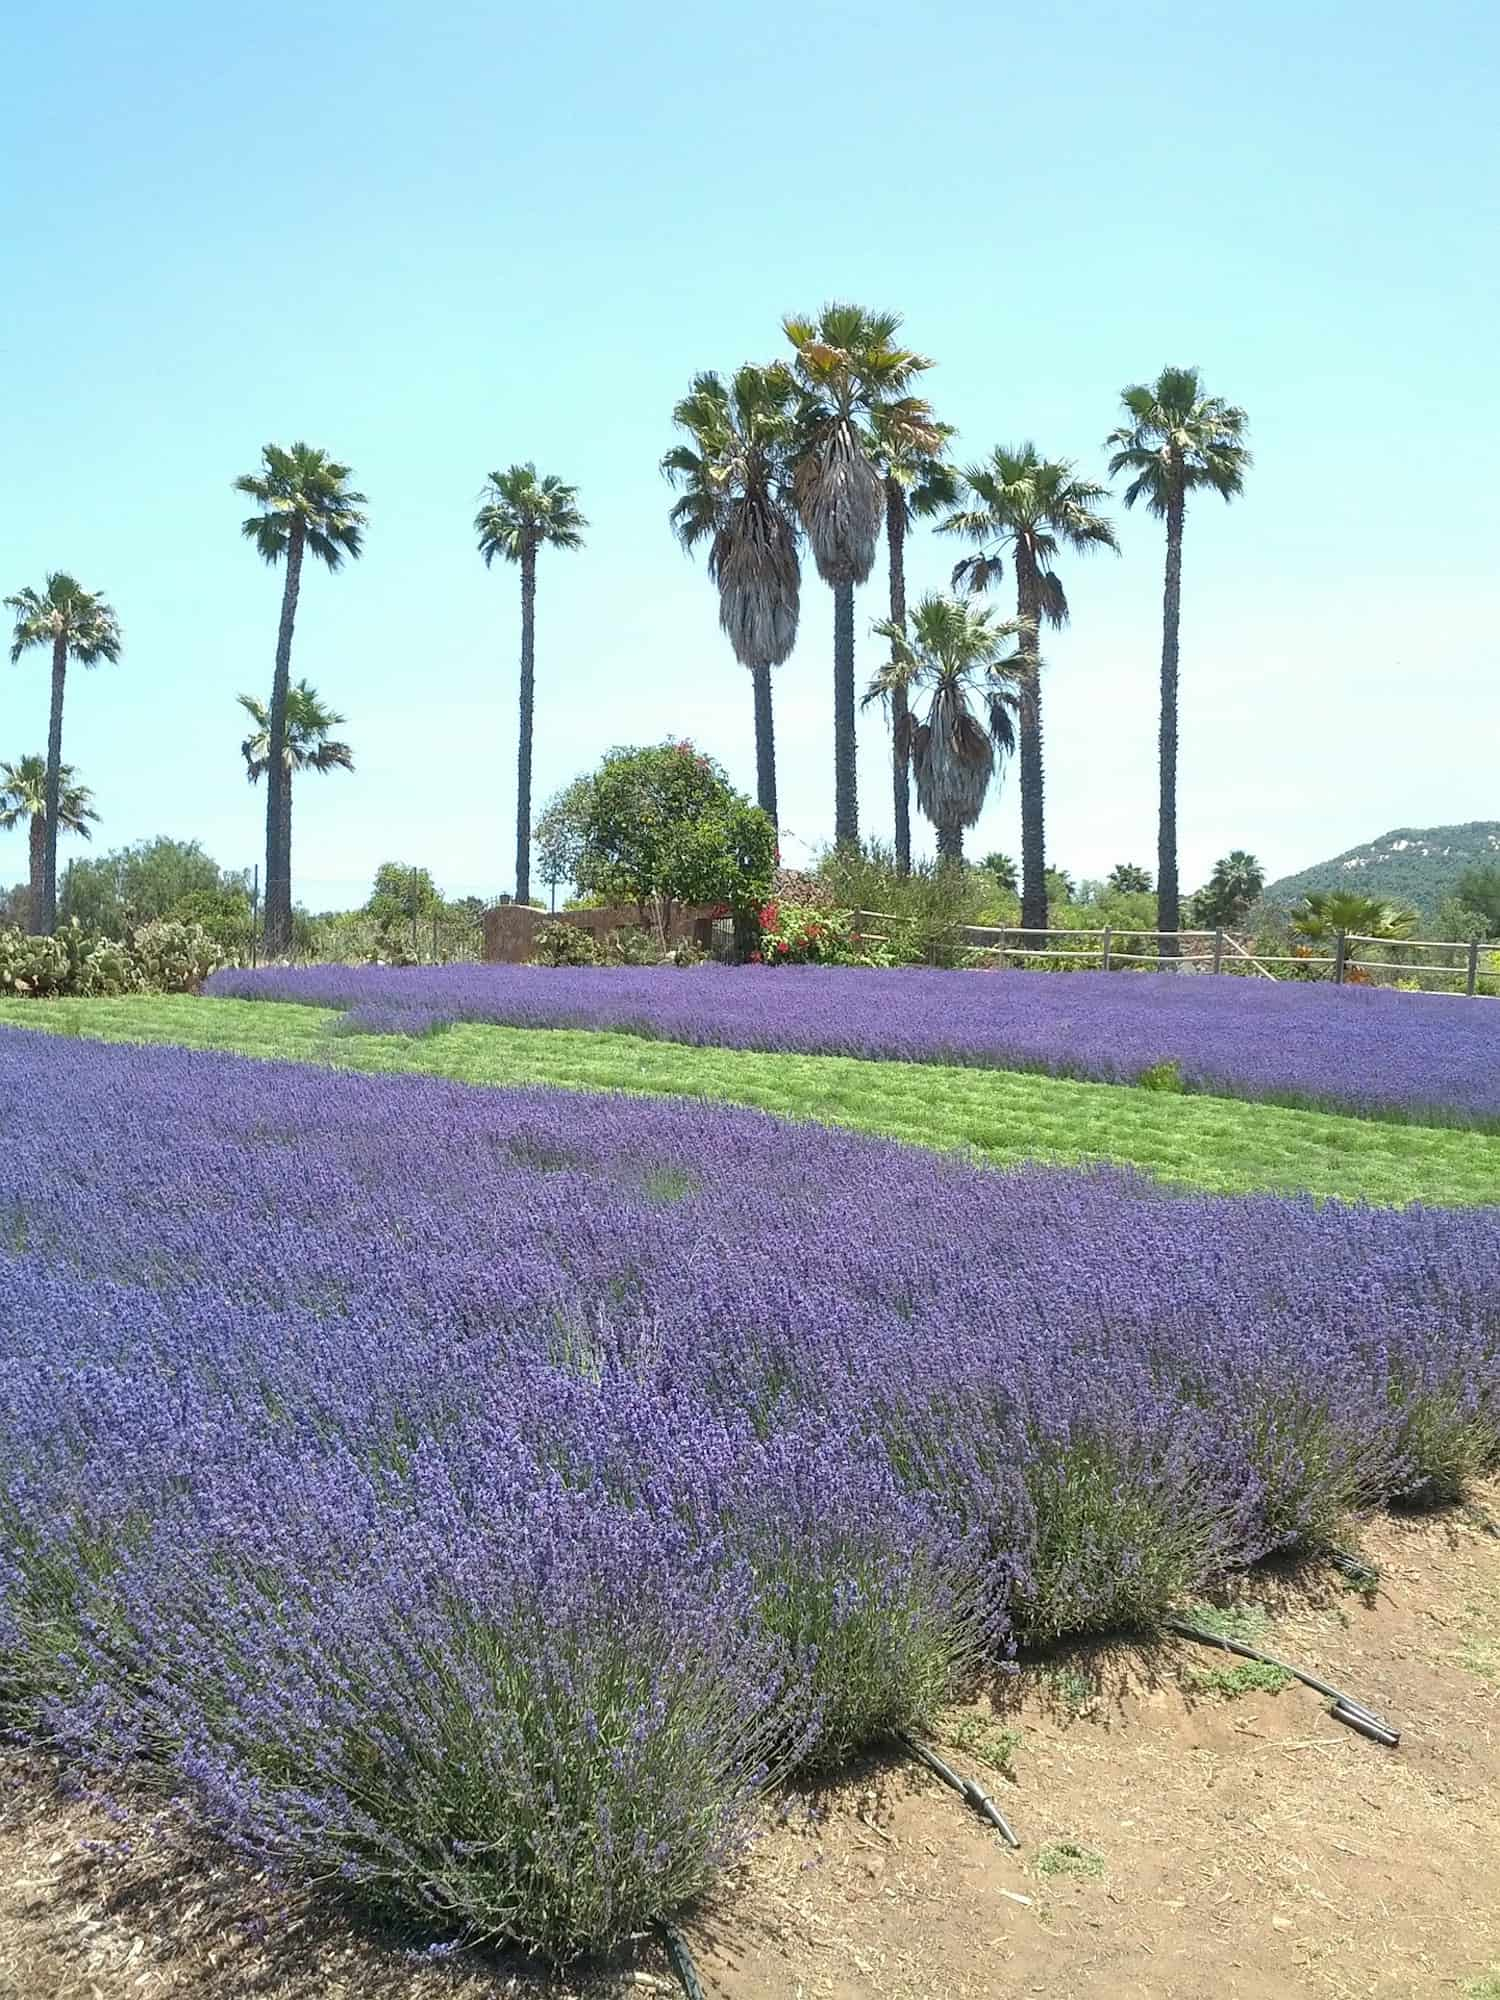 Lavender field with Palm Trees